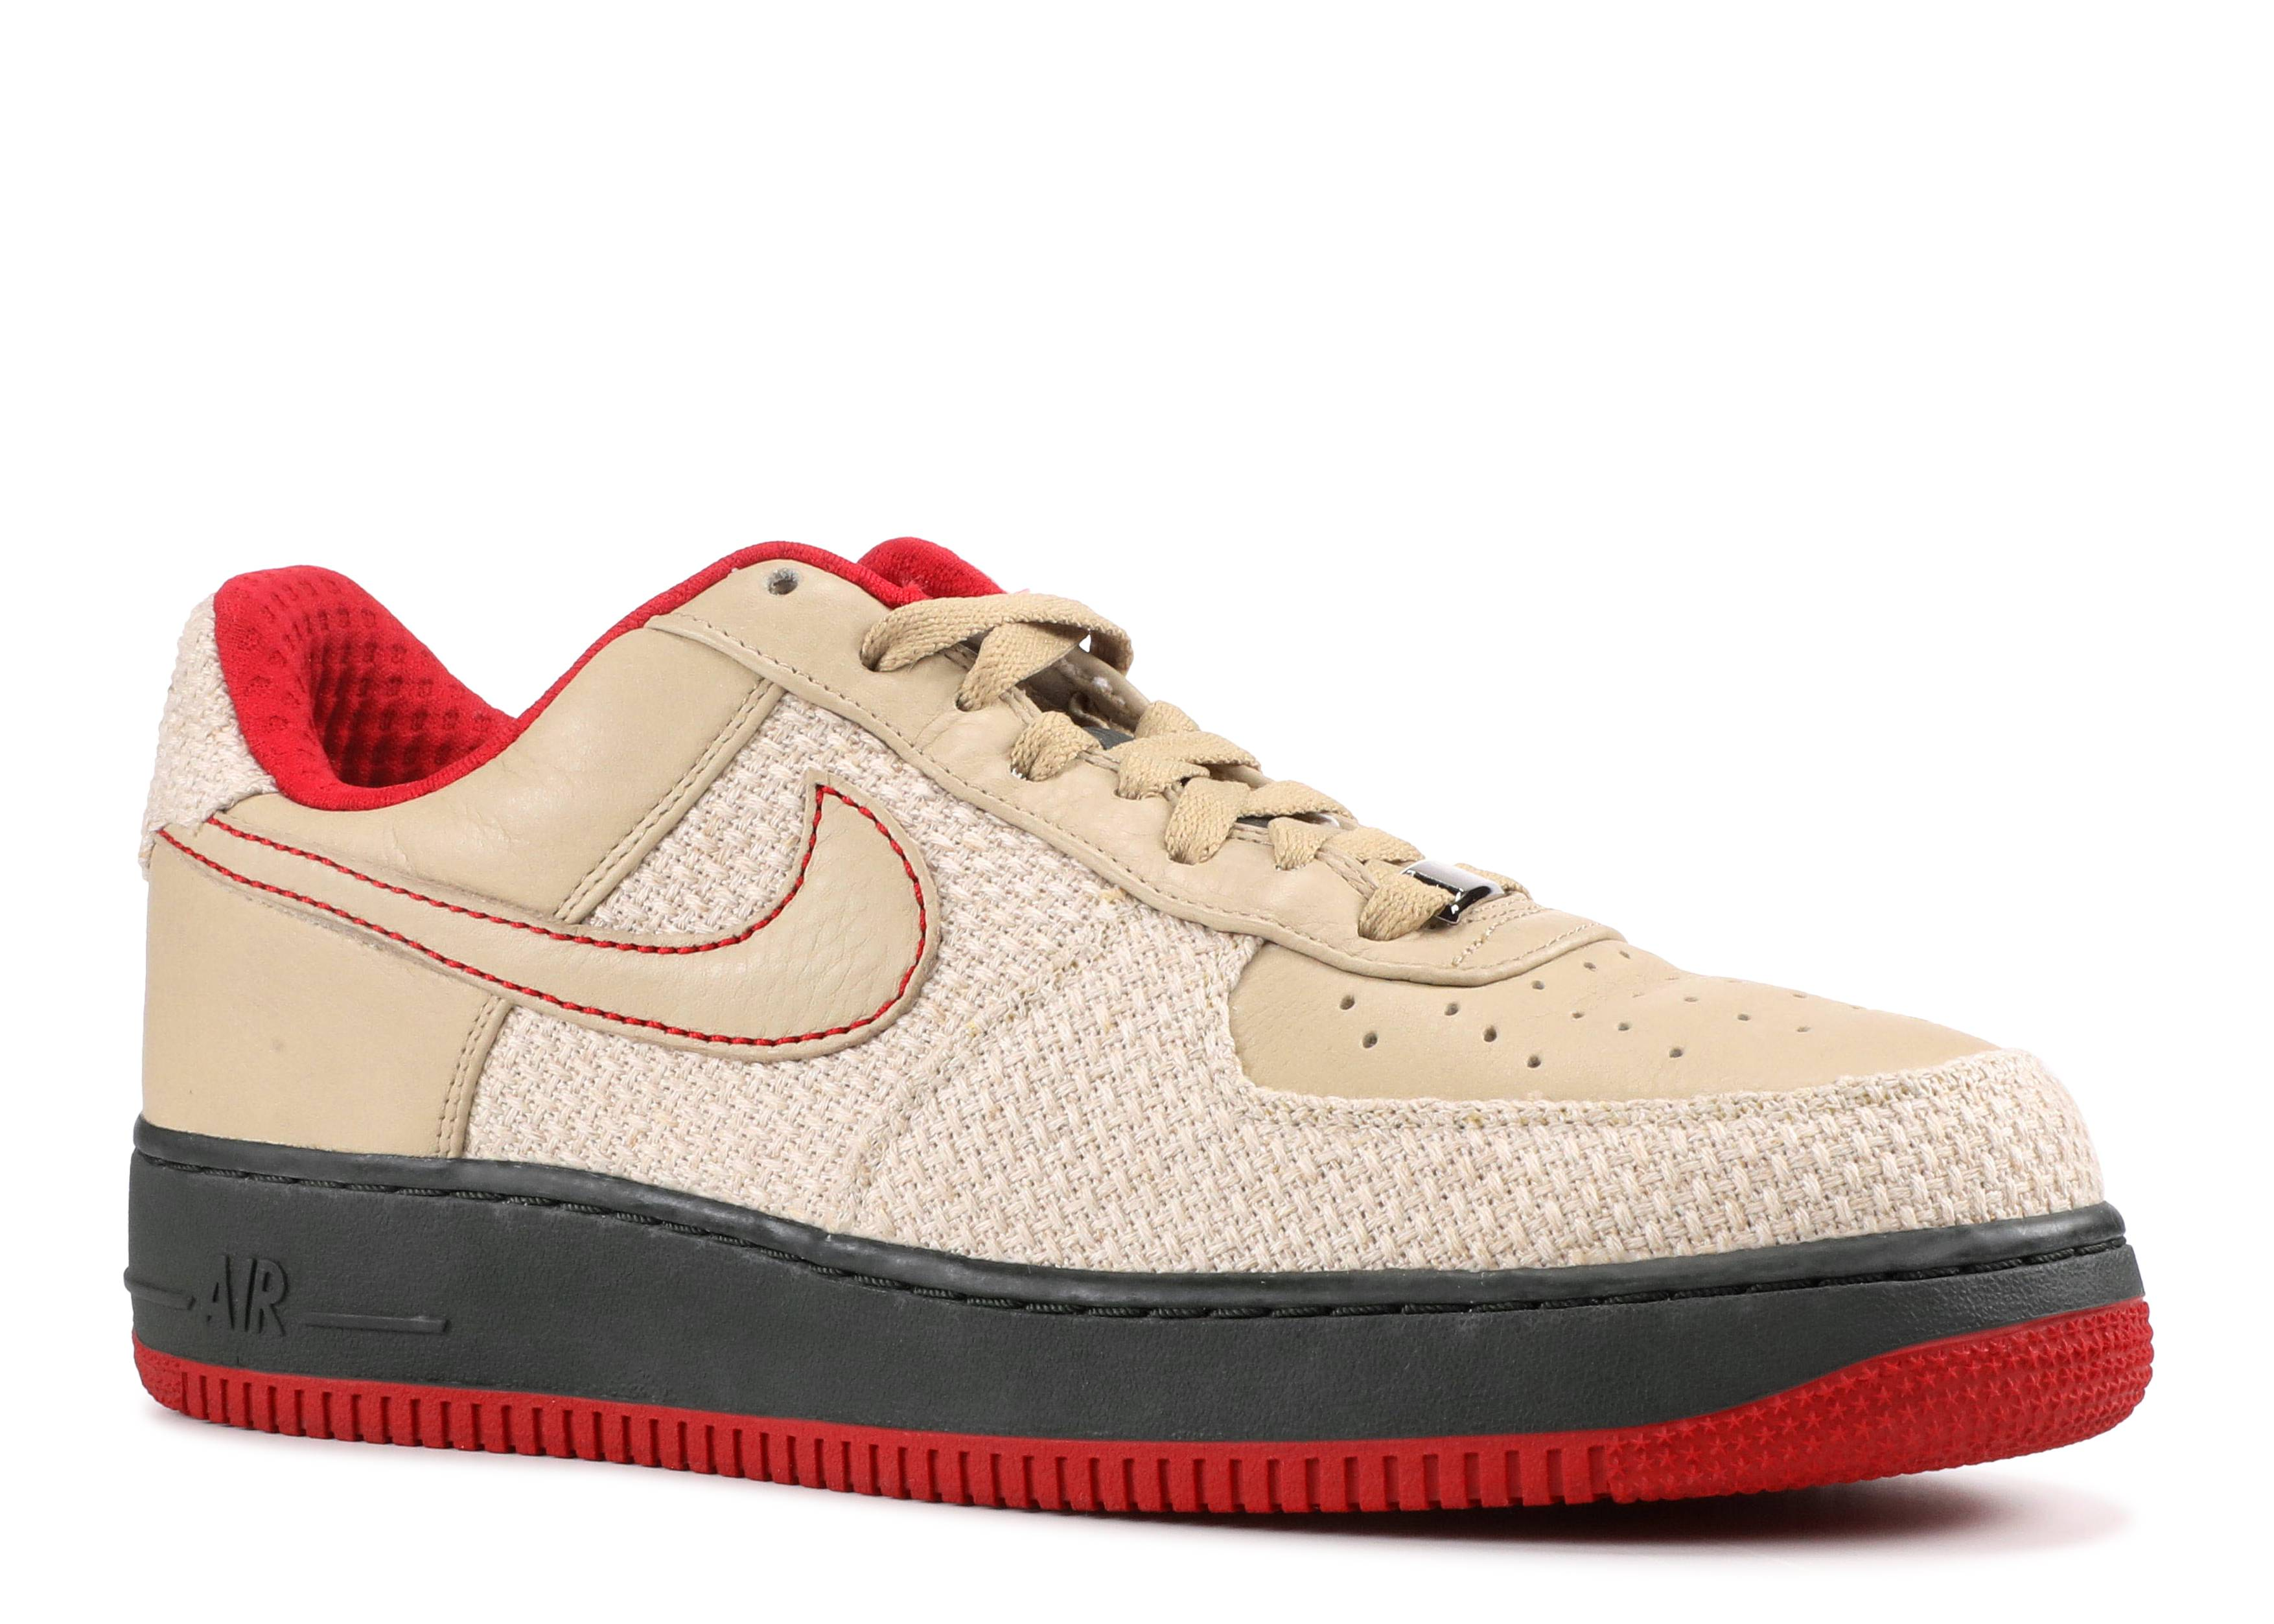 Nike Air Force 1 Tweed - Musée des impressionnismes Giverny 61749add4a9e3